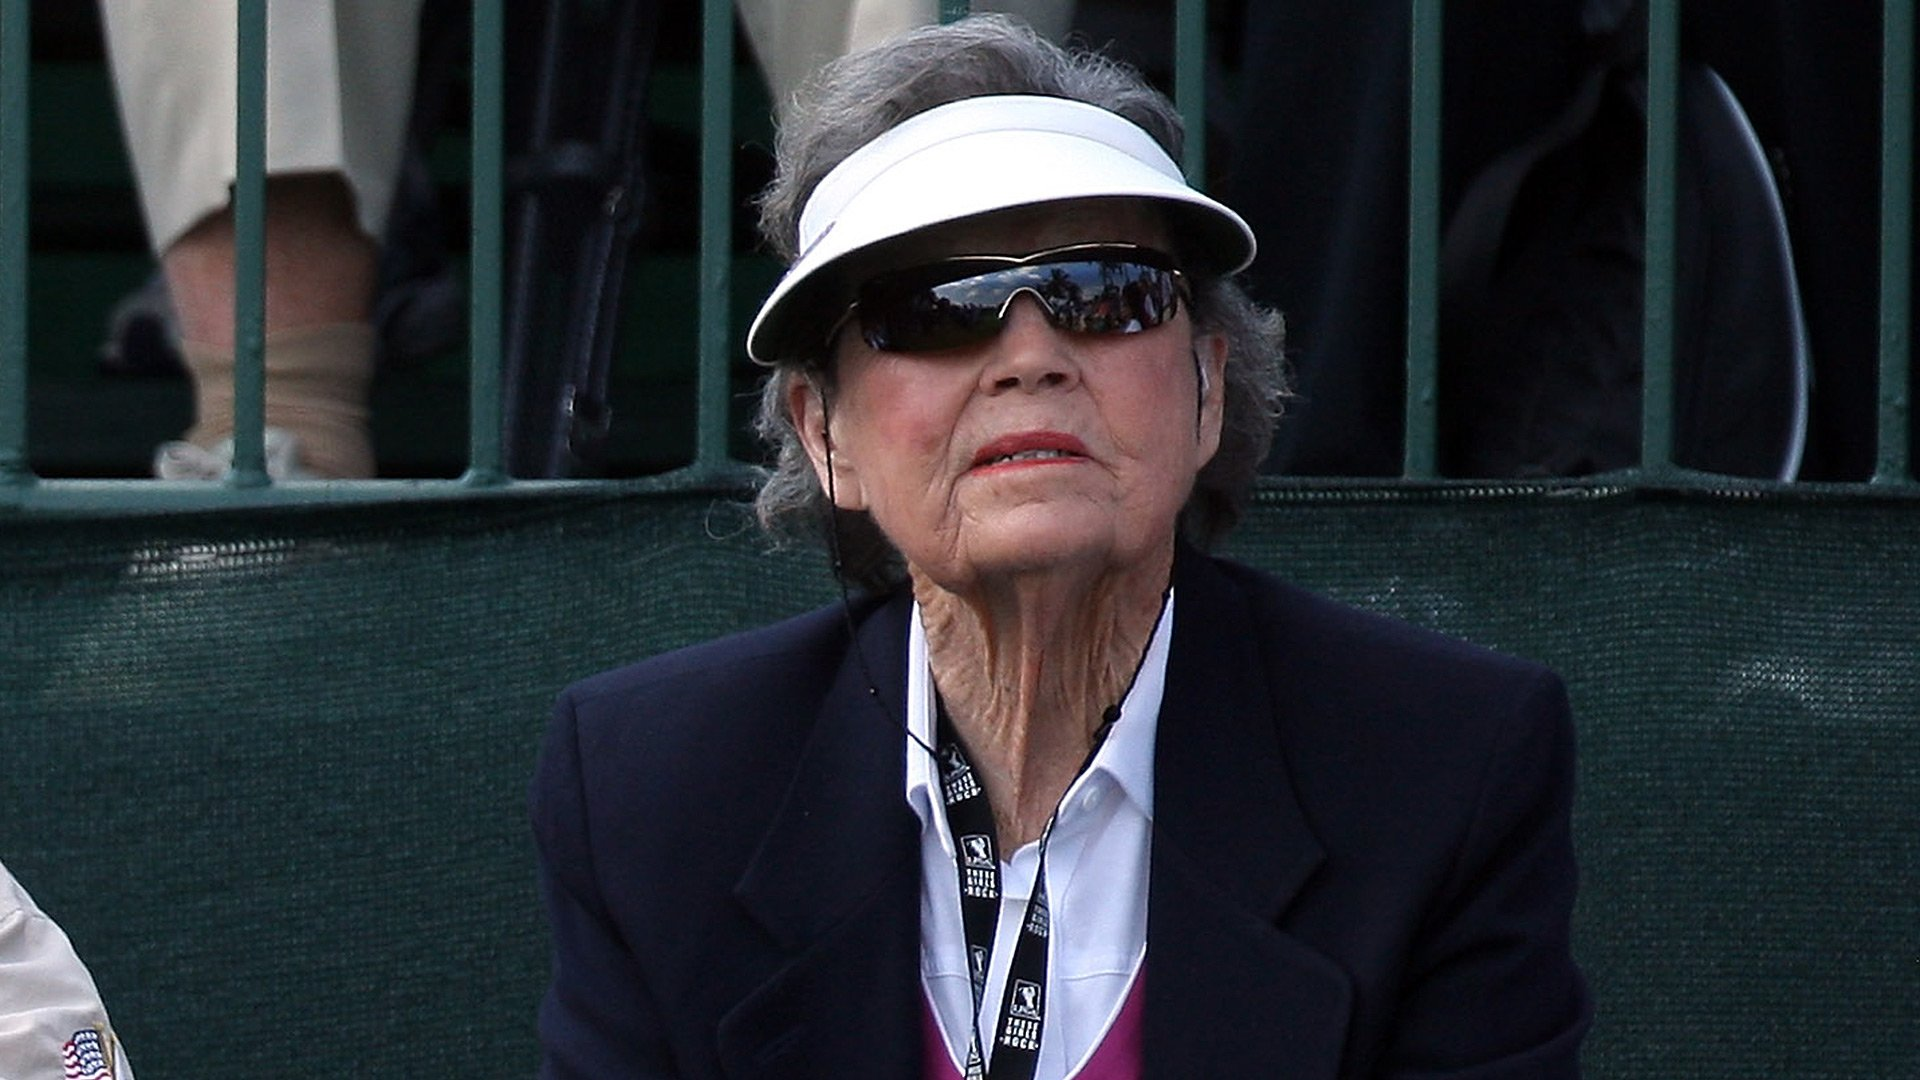 Peggy Kirk Bell, who made her mark on golf as a major champion, hall-of-fame teacher and course owner, dies at 95: https://t.co/bV9B5xGsrt https://t.co/Jn0qtSJp7B